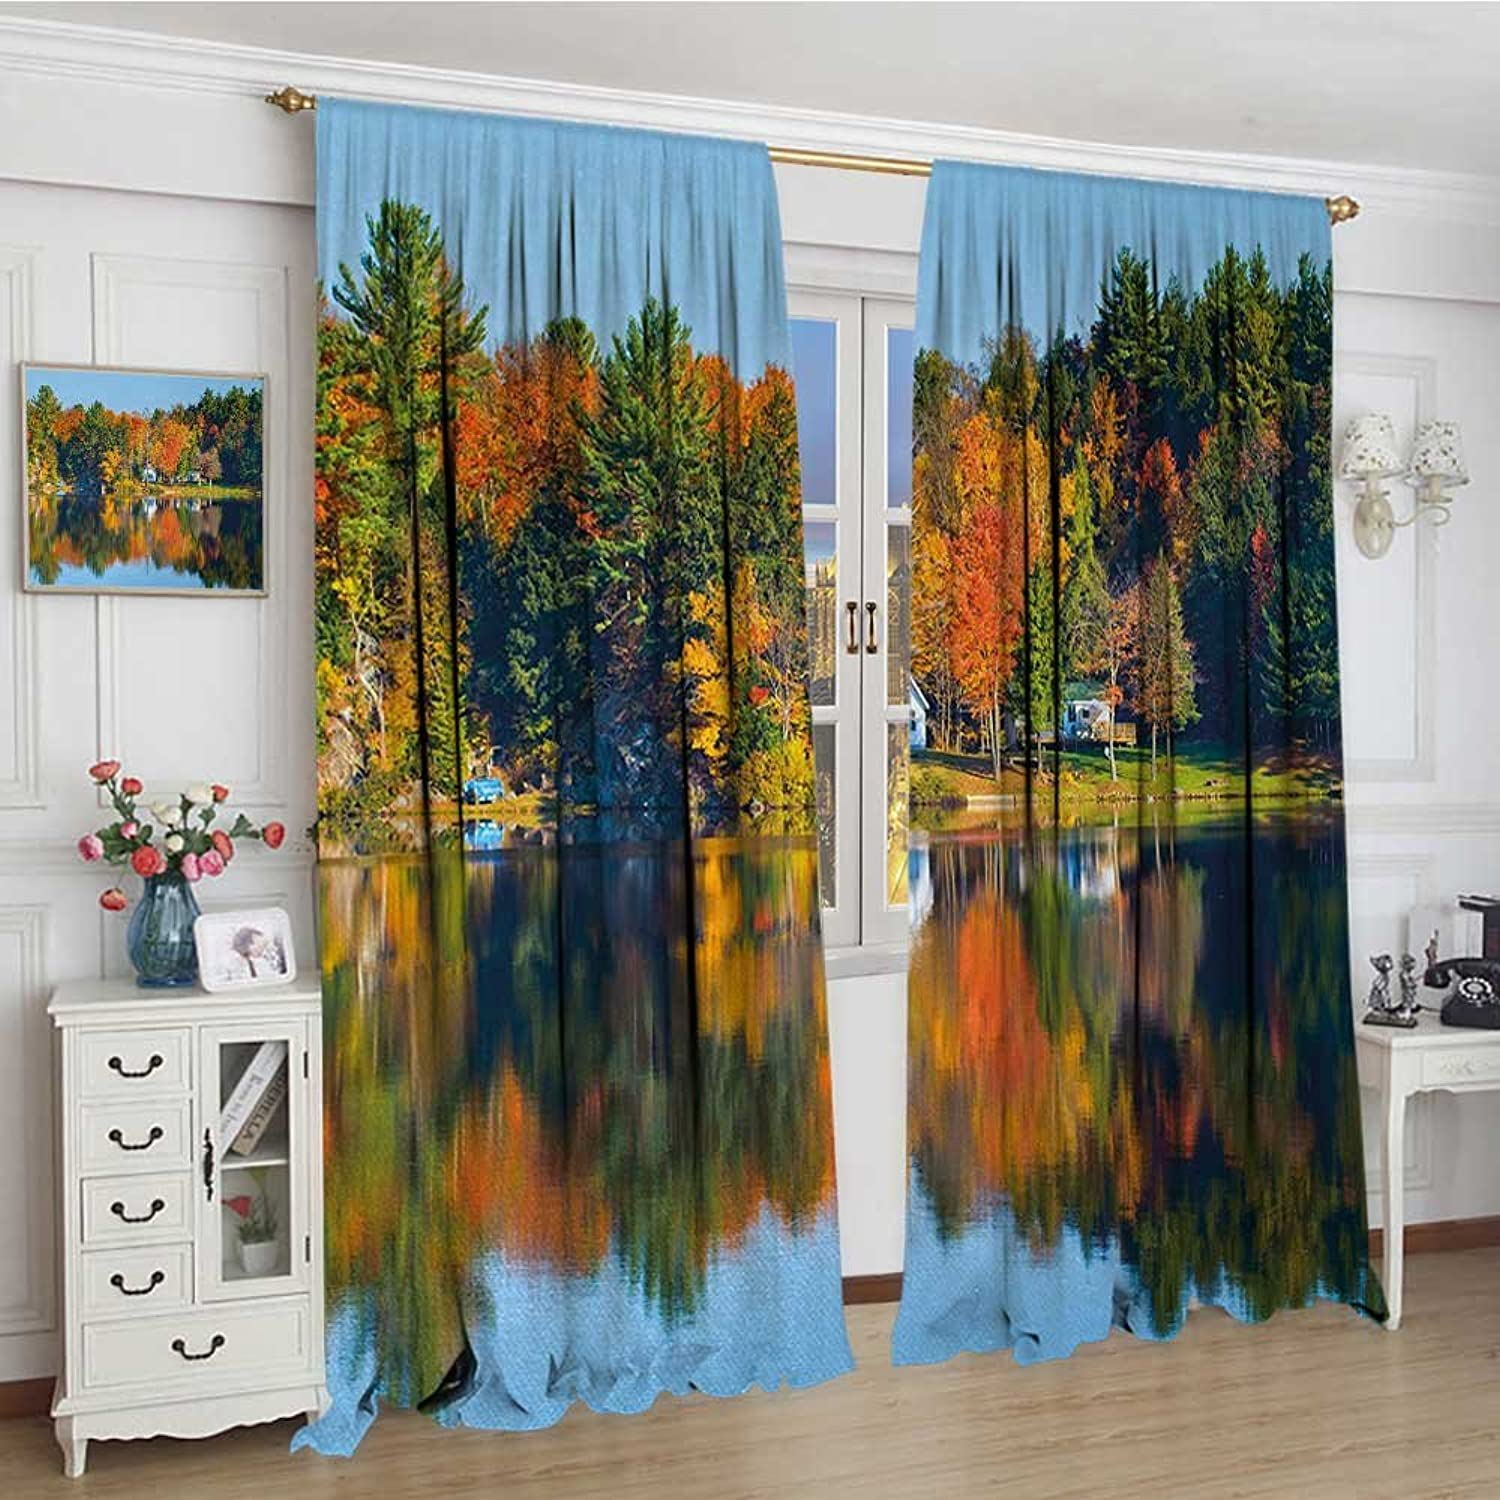 Smallbeefly Landscape Widened Blackout Window Curtain Autumn Fall Landscape with orange Marigold Leaves Lake Houses and Clear Sky Image Waterproof Window Curtain 120 x72  Multicolor